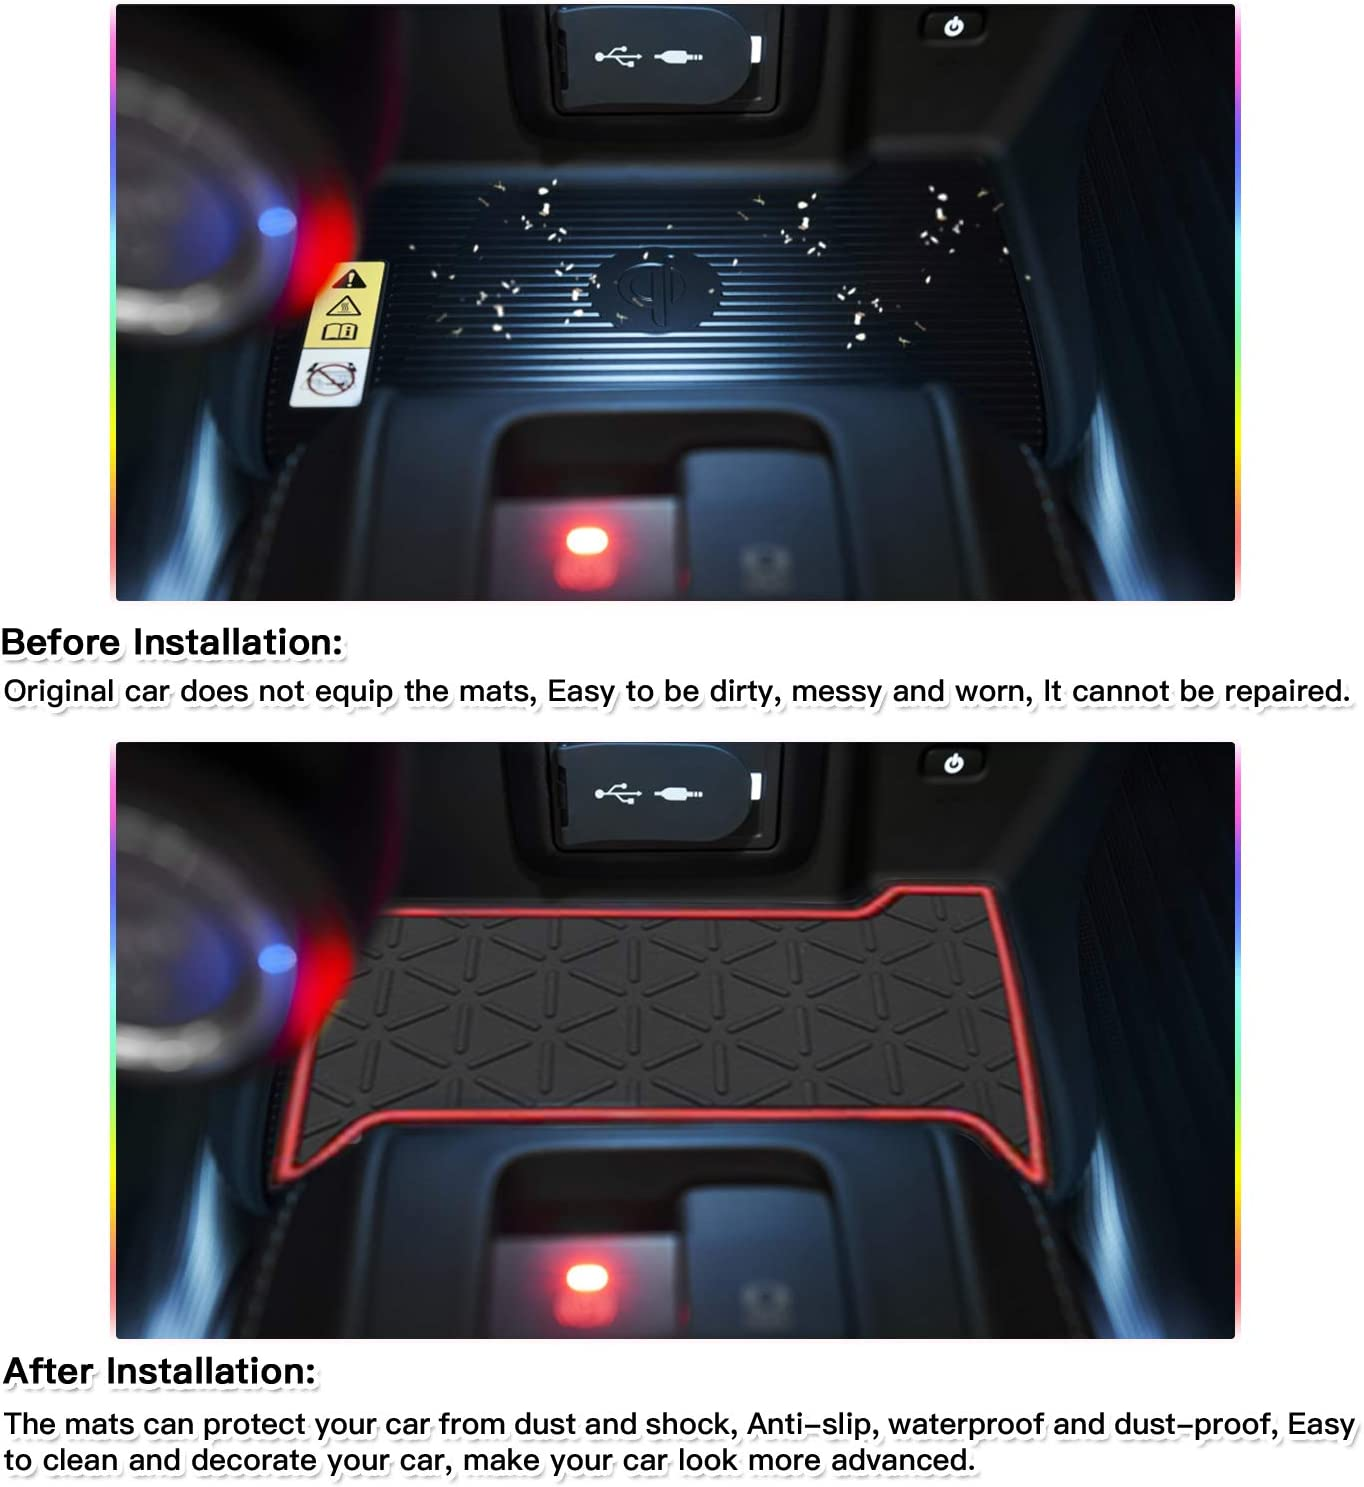 White Door Slot Mat for 2021 Venza Non-Slip Interior Door Groove Gate Pad Fit Toyota Door Compartment Cup Center Console Liners Car Accessory Decoration